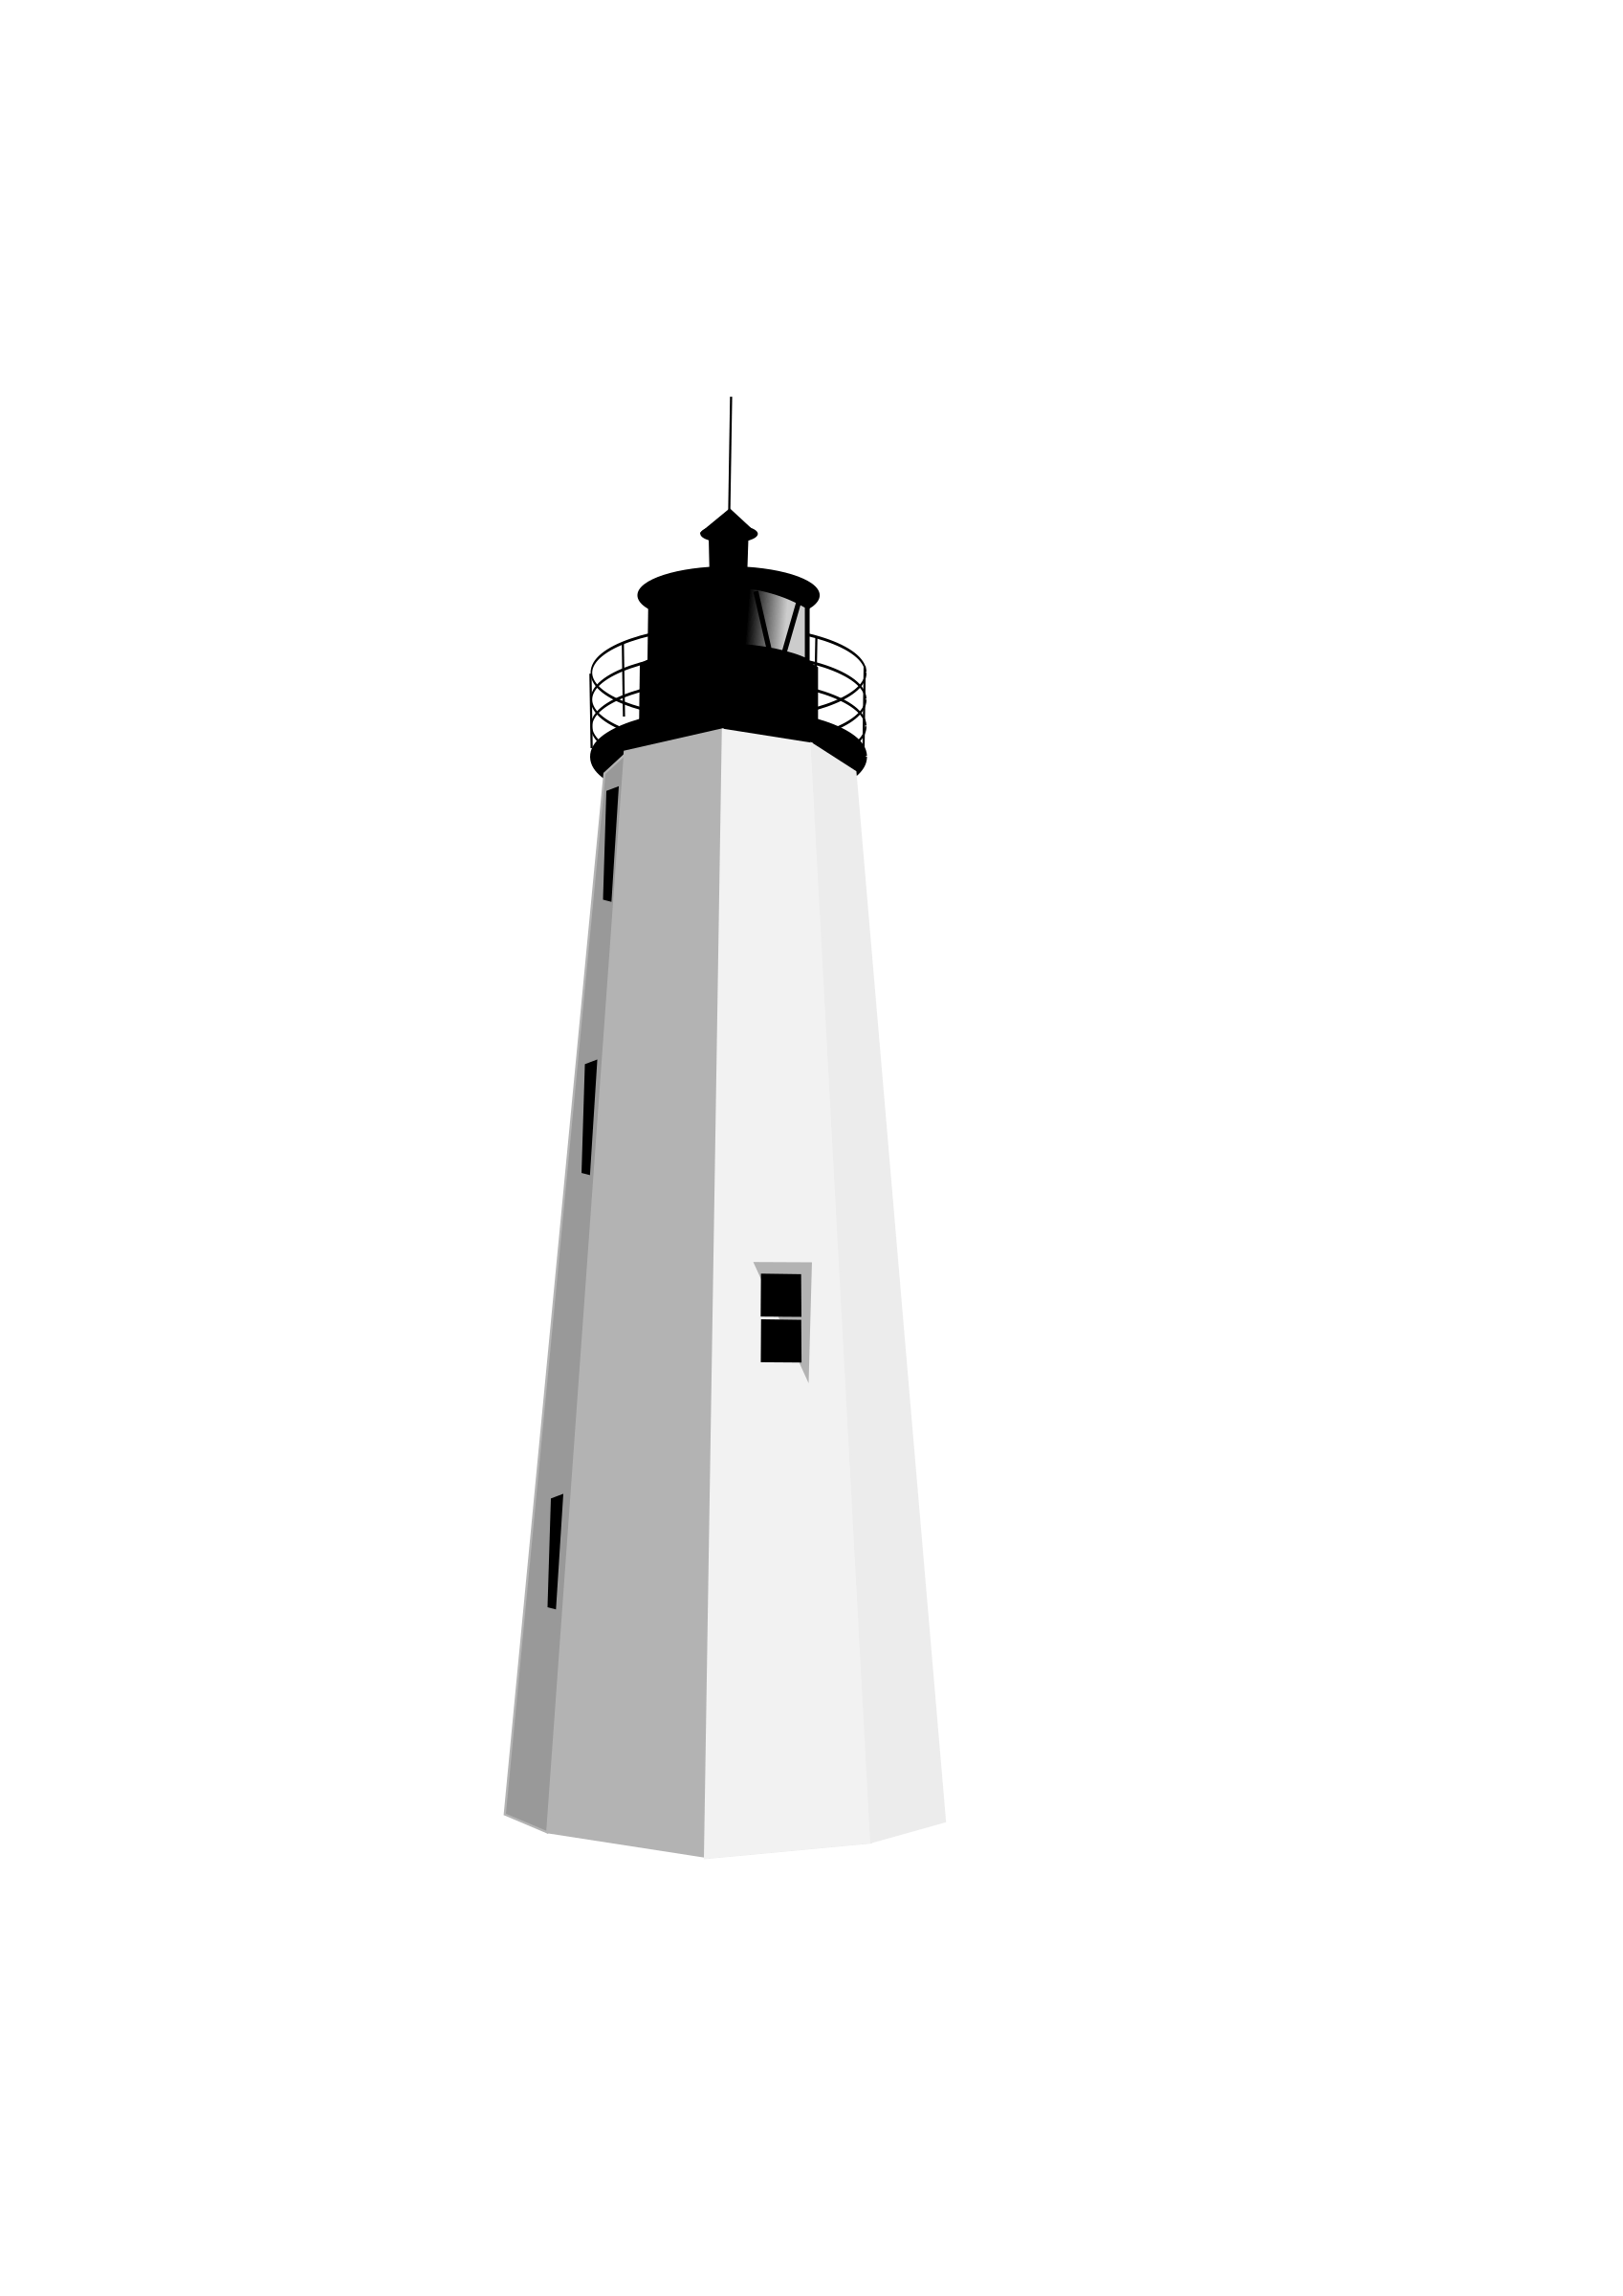 Black White Lighthouse Clipart transparent PNG.